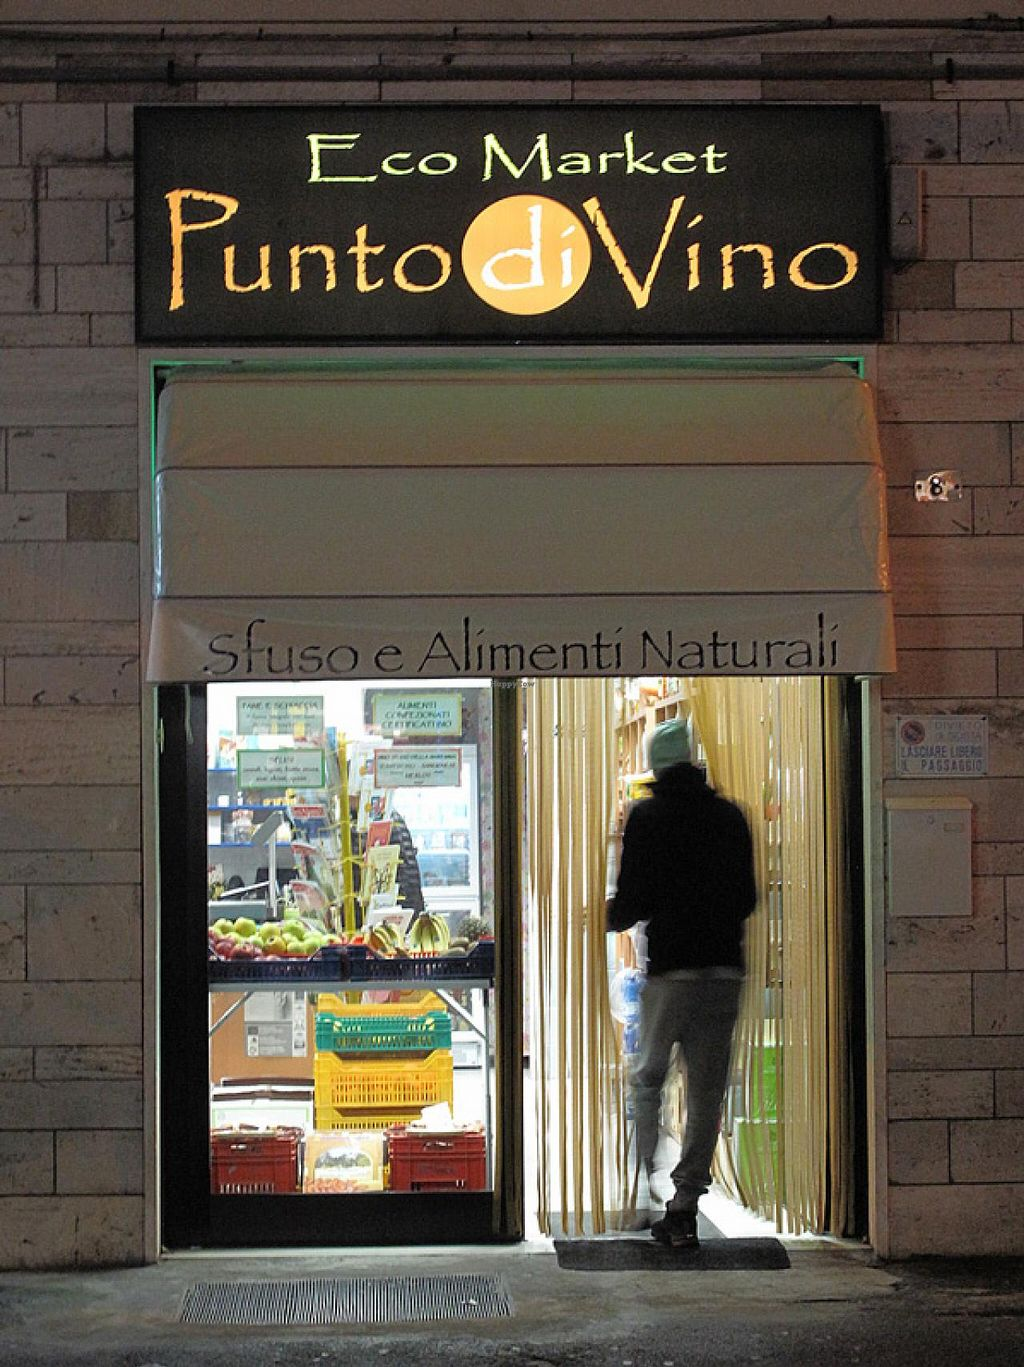 """Photo of CLOSED: Punto di Vino  by <a href=""""/members/profile/lallilaranja"""">lallilaranja</a> <br/>street view <br/> February 9, 2014  - <a href='/contact/abuse/image/45183/64000'>Report</a>"""